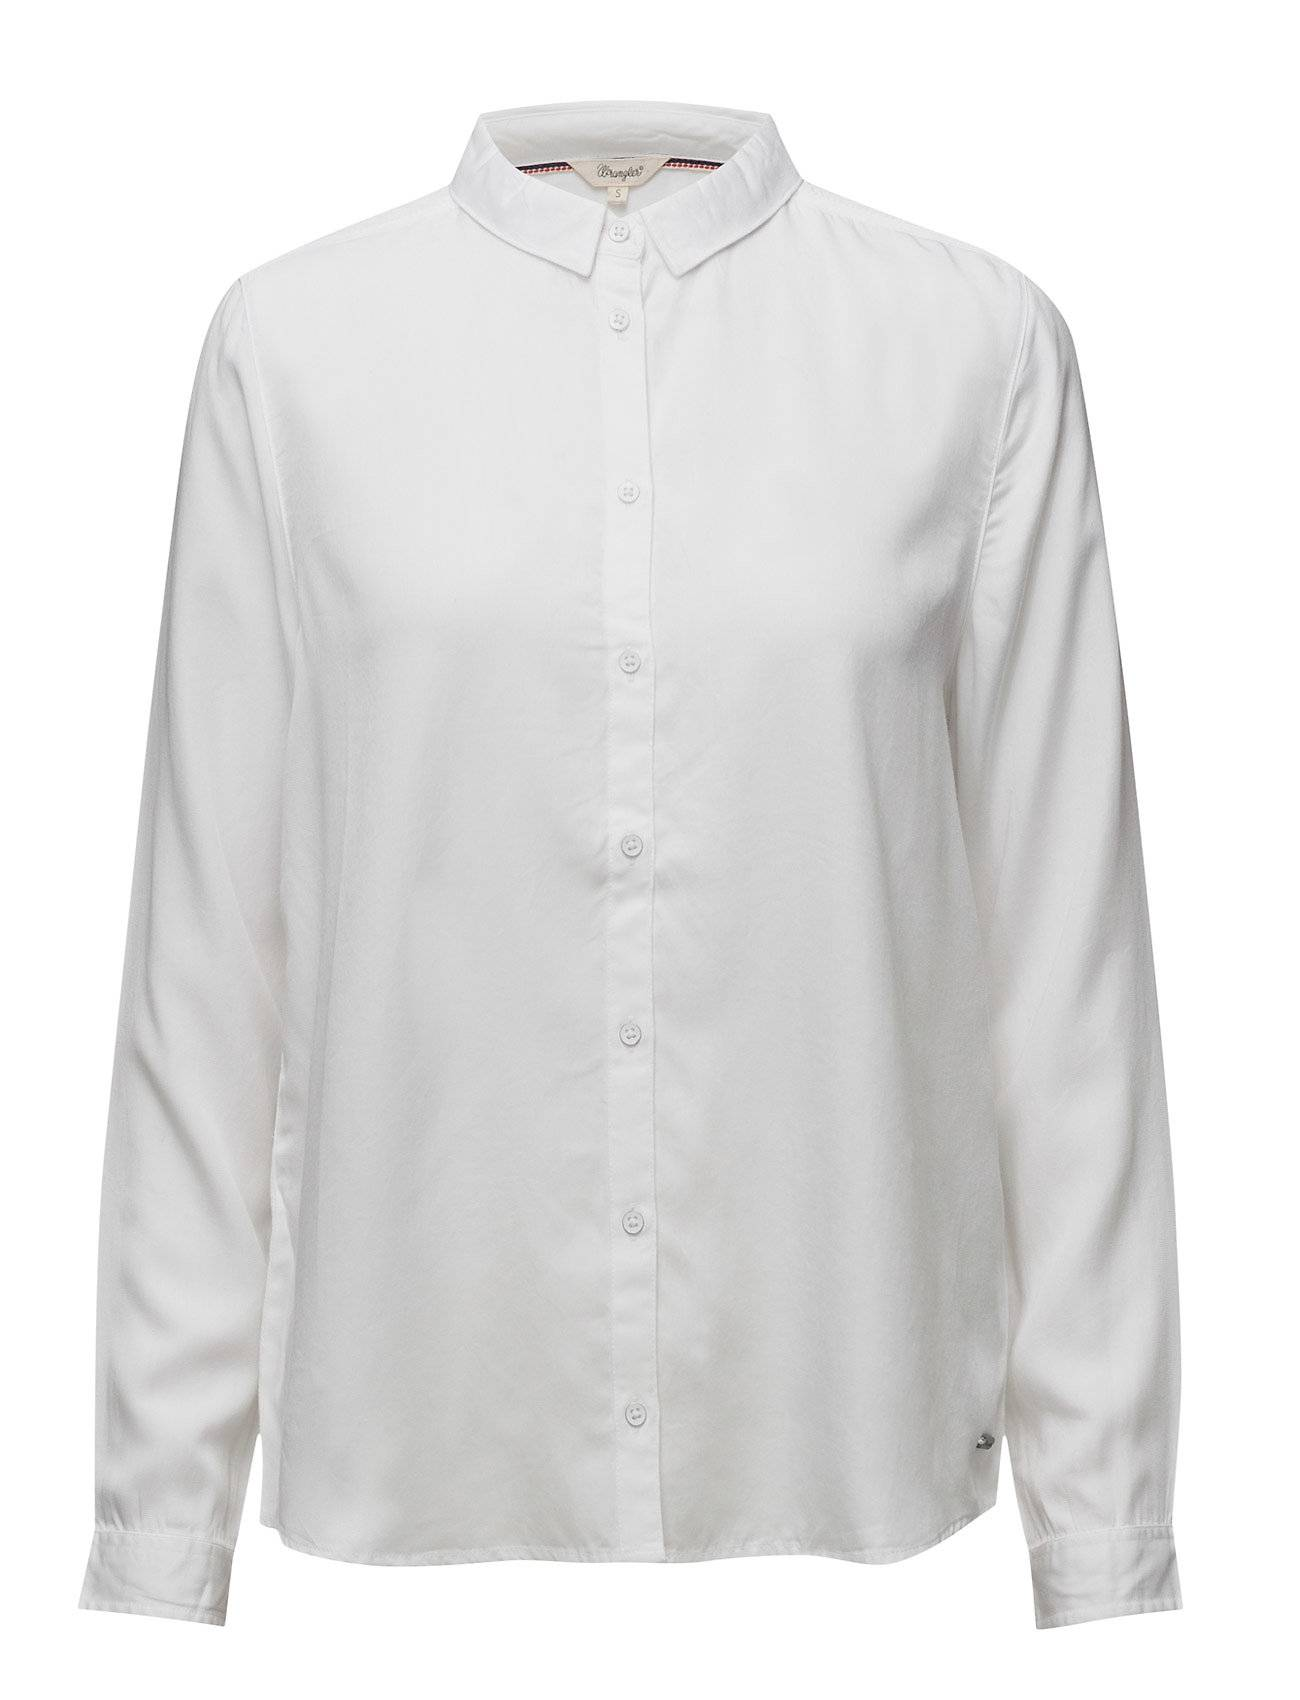 Wrangler Solid Shirt White